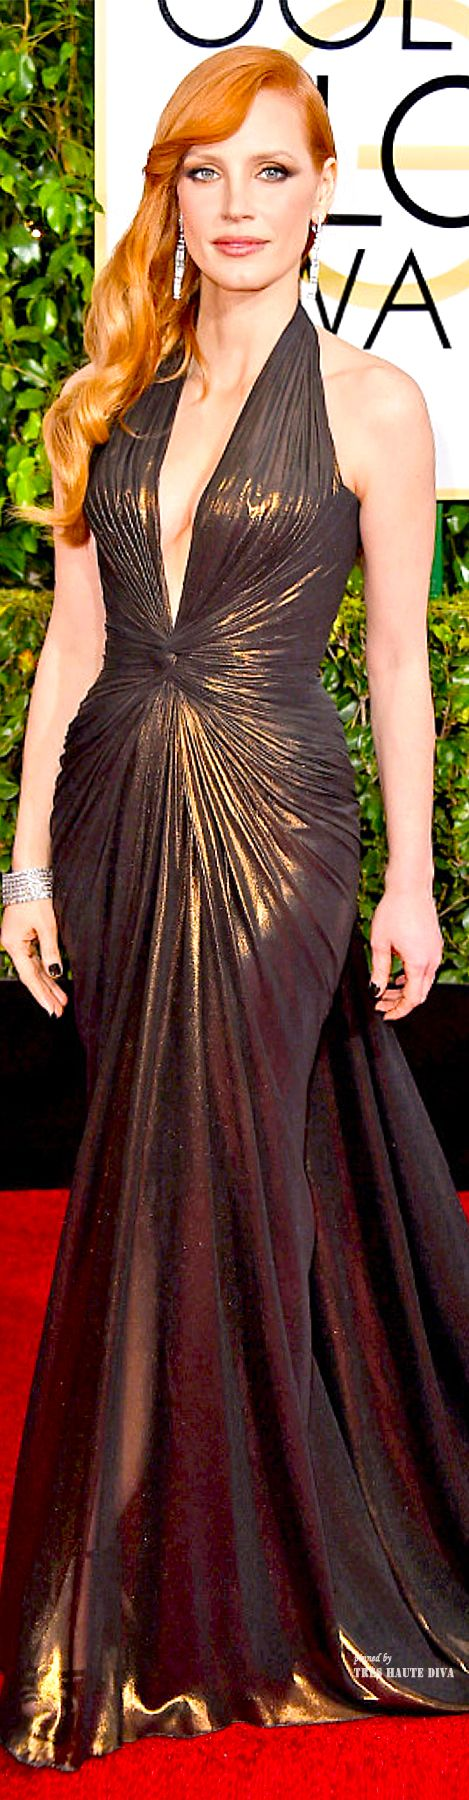 Jessica Chastain in Atelier Versace - Golden Globe Awards 2015  ♔THD♔